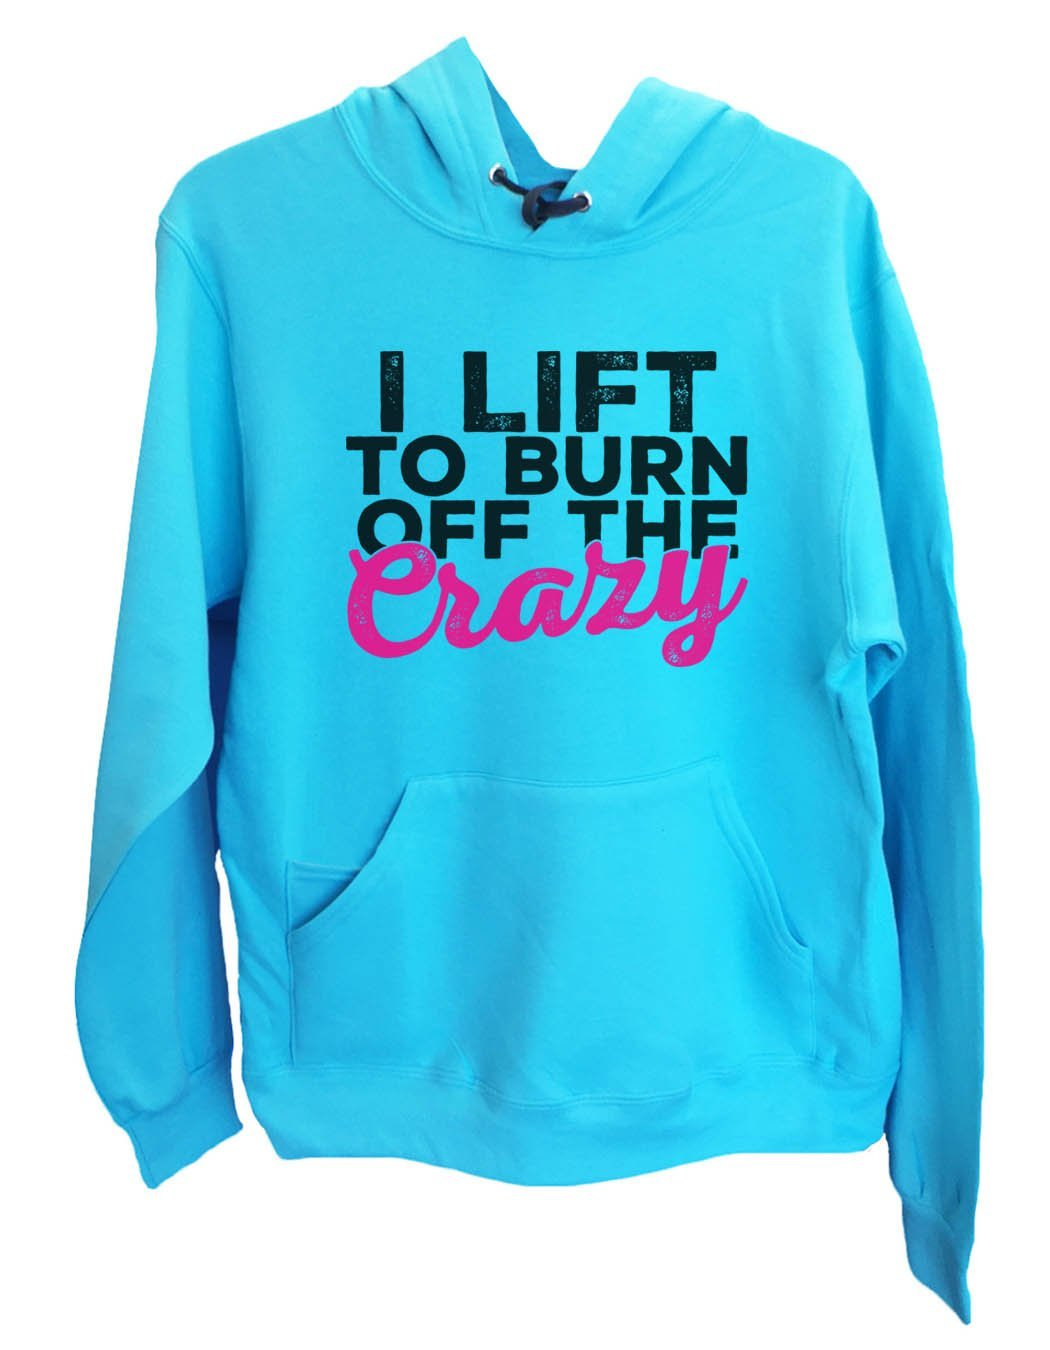 UNISEX HOODIE - I lift to burn off the crazy - FUNNY MENS AND WOMENS HOODED SWEATSHIRTS - 2110 Funny Shirt Small / Turquoise